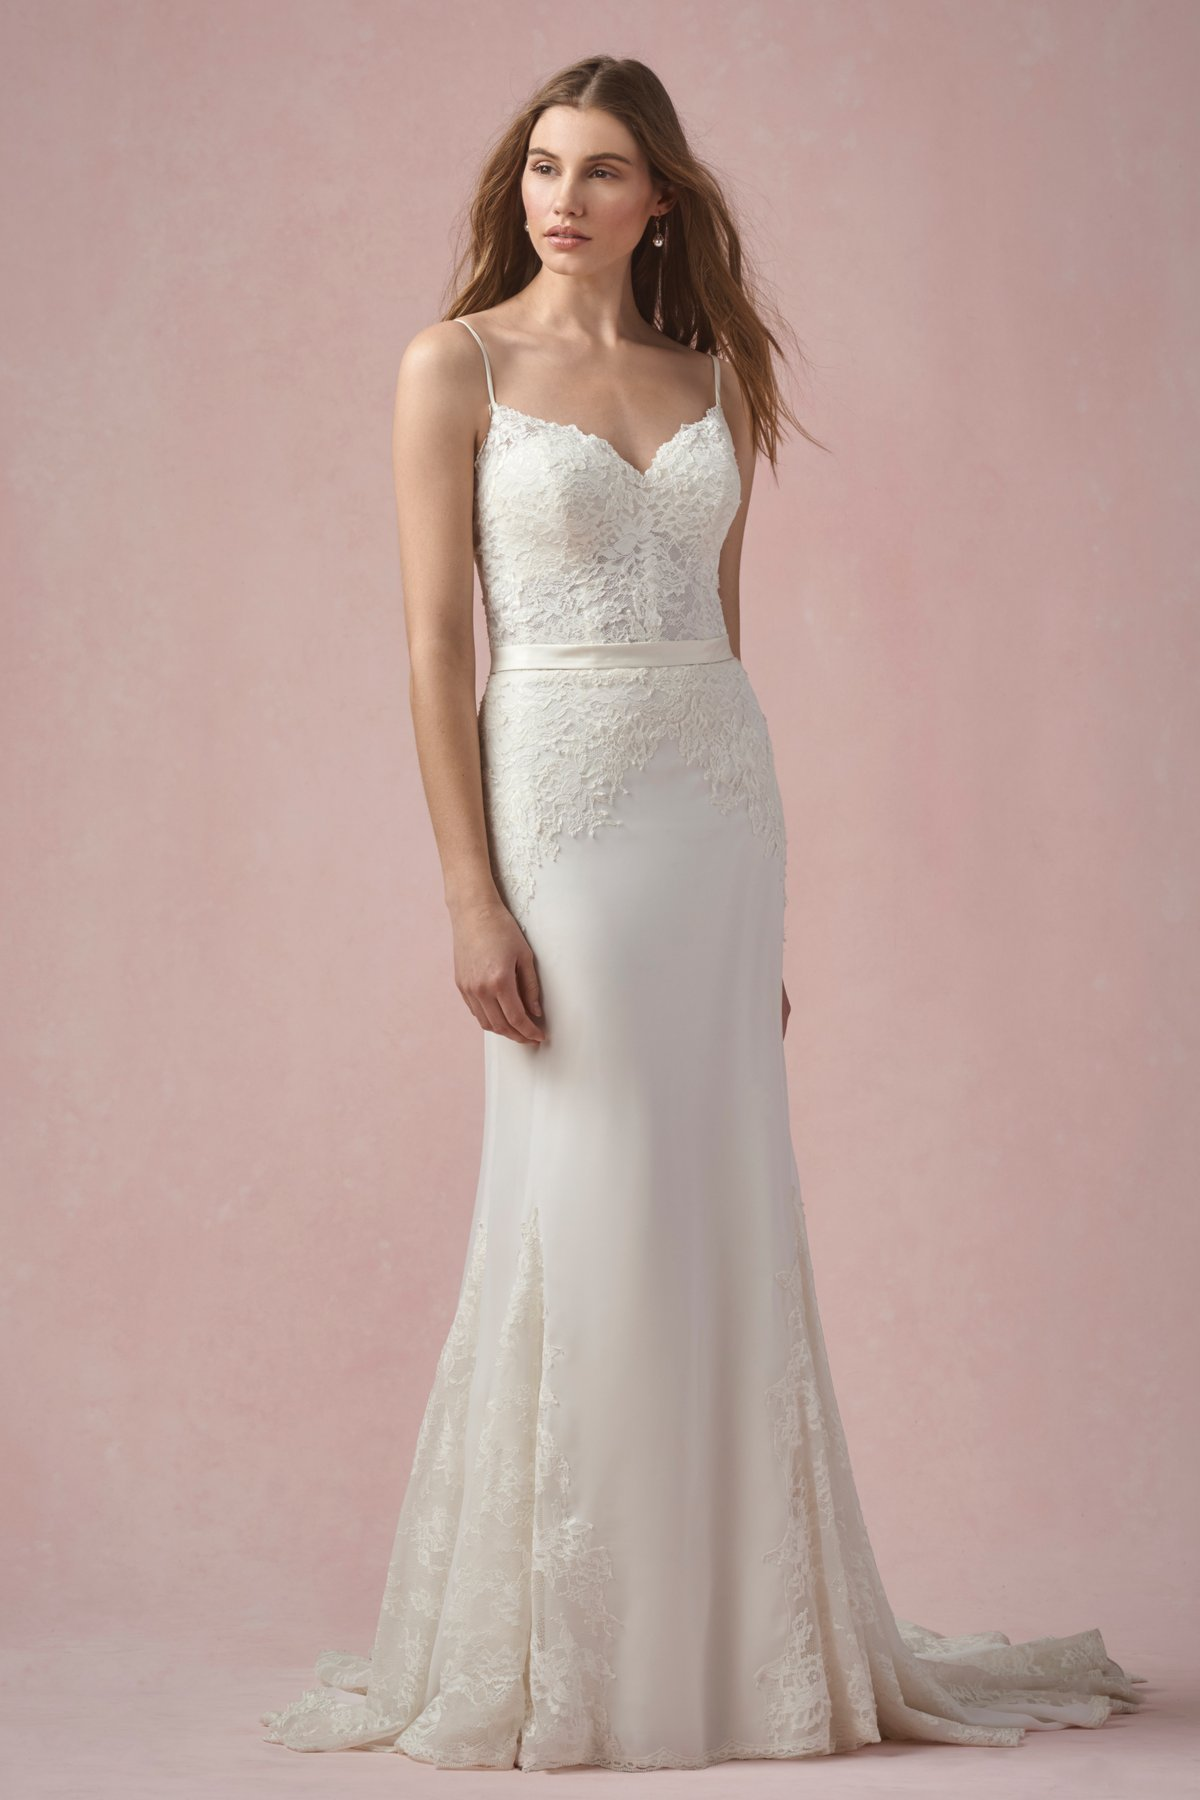 Watters Wedding Dresses South Africa - Wedding Dresses ...